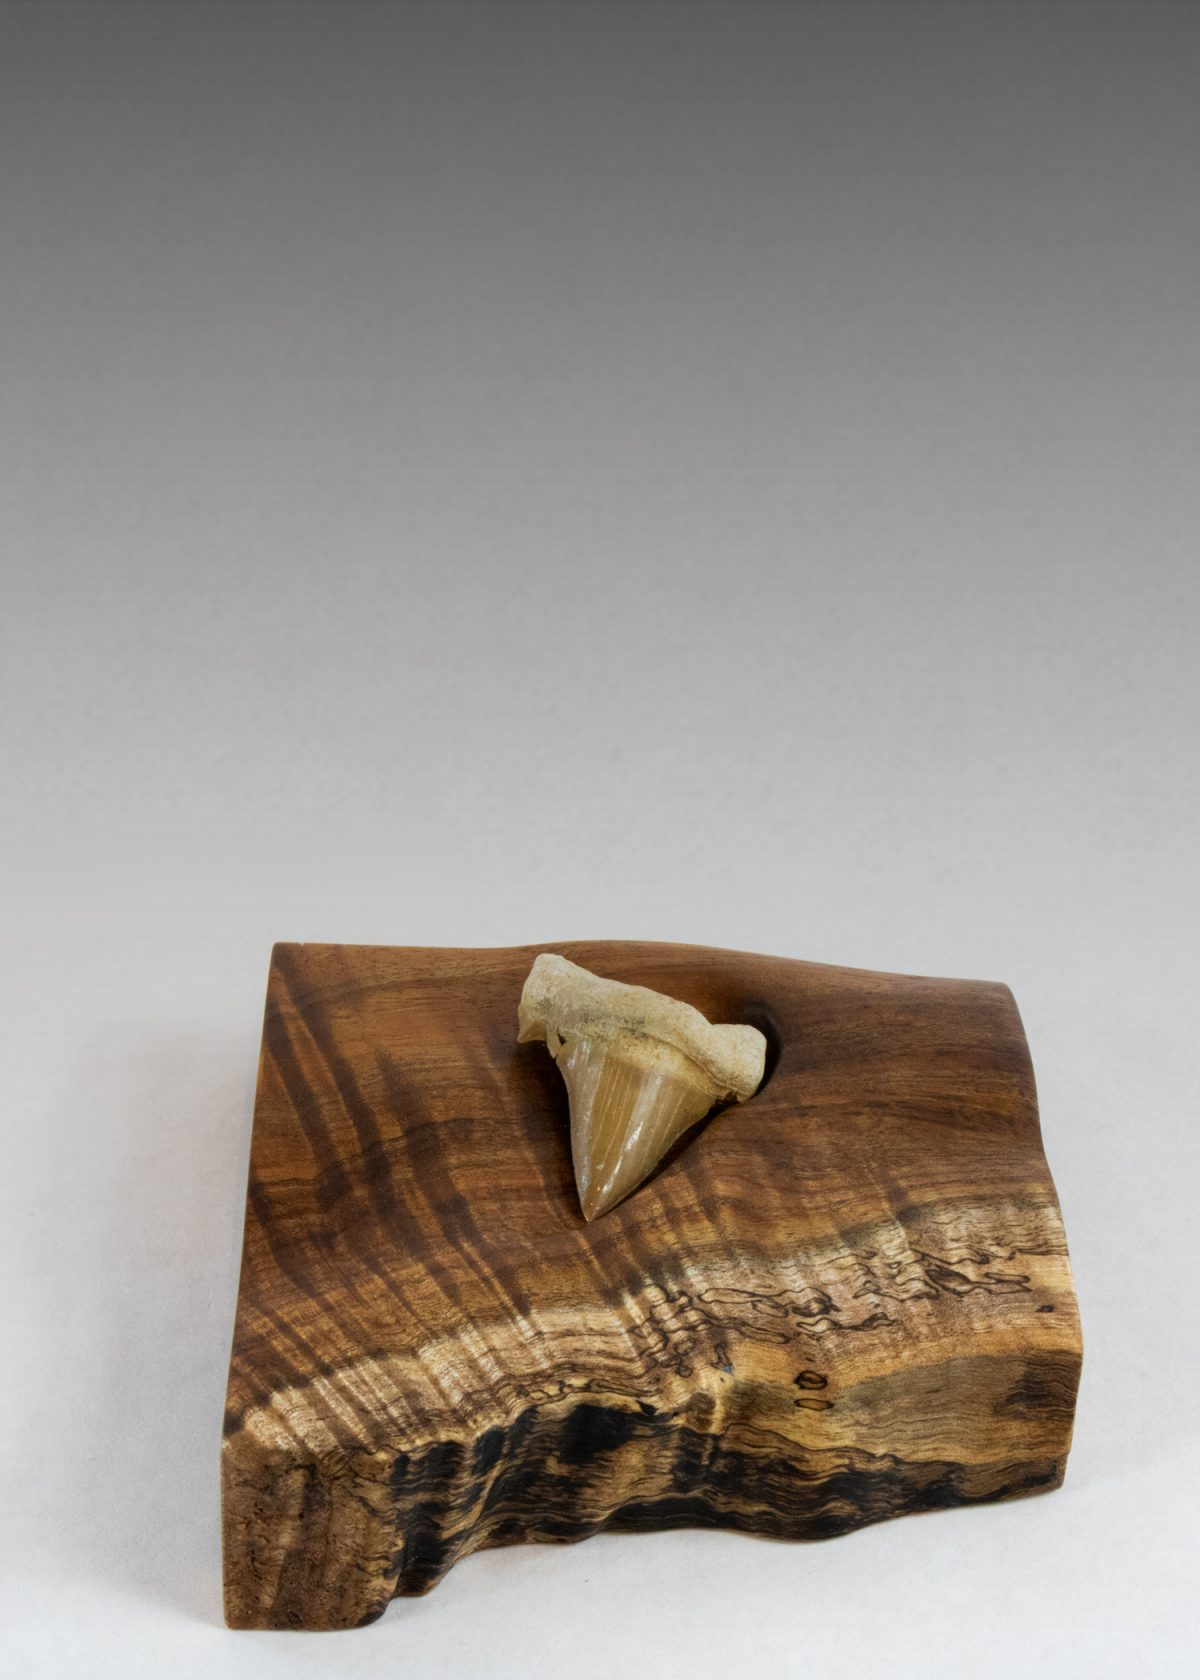 Andrew Vallees Show work  Real Shark Tooth